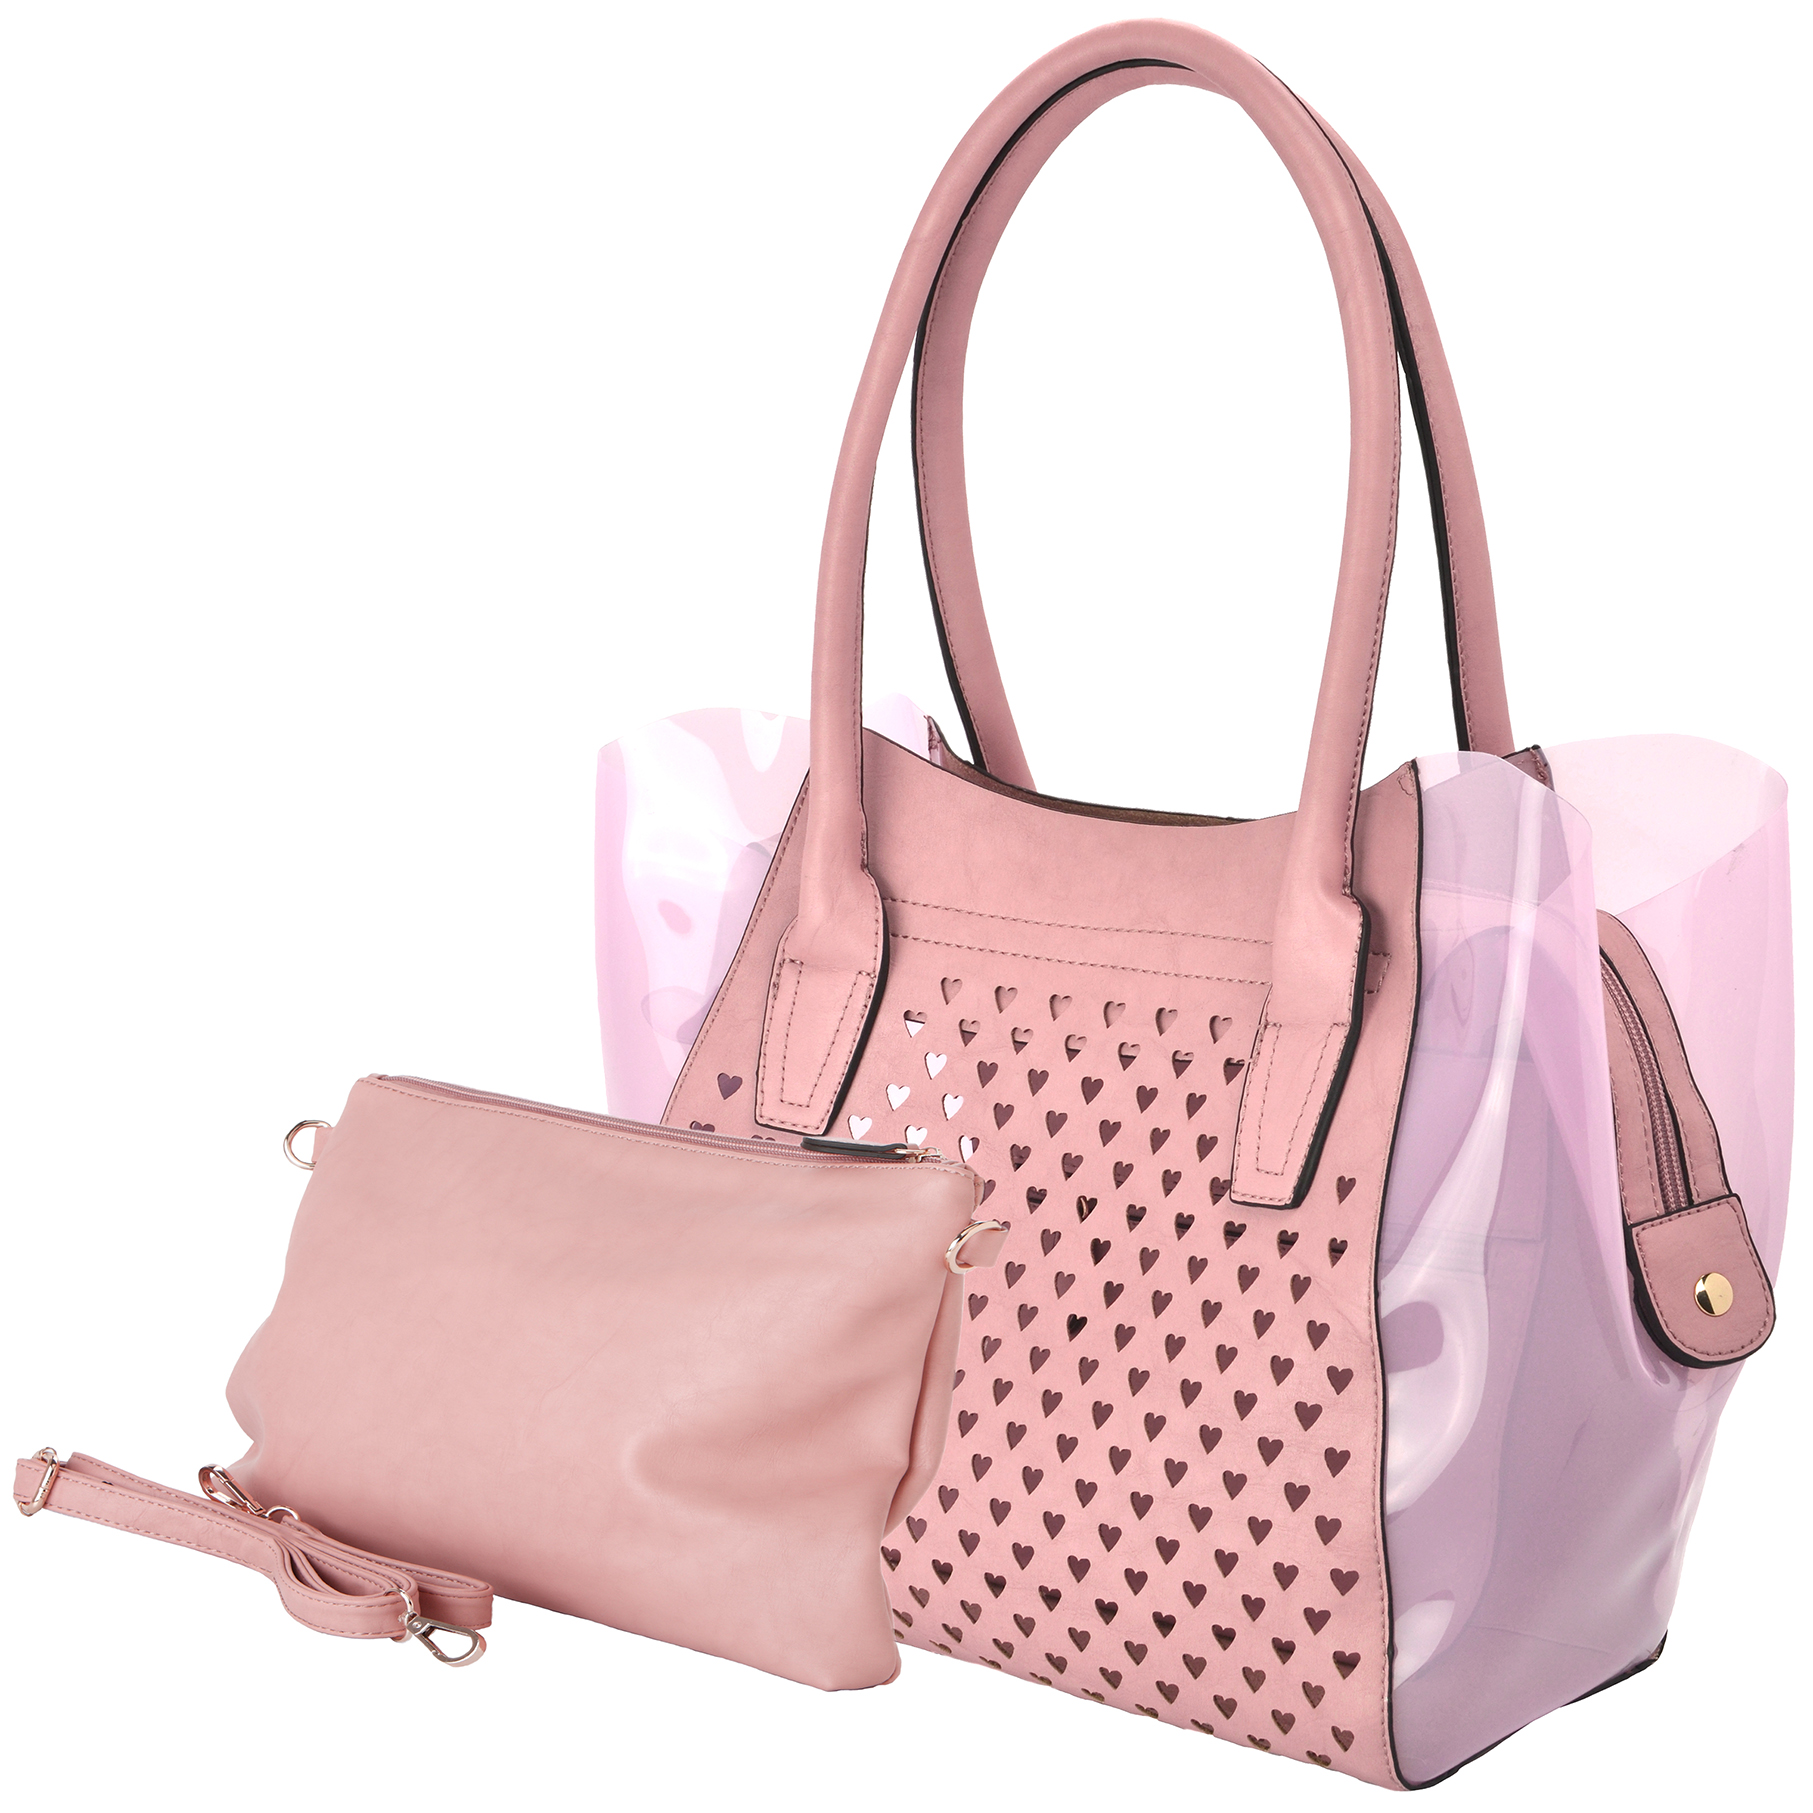 Lara pink 2 in 1 shopper tote main image